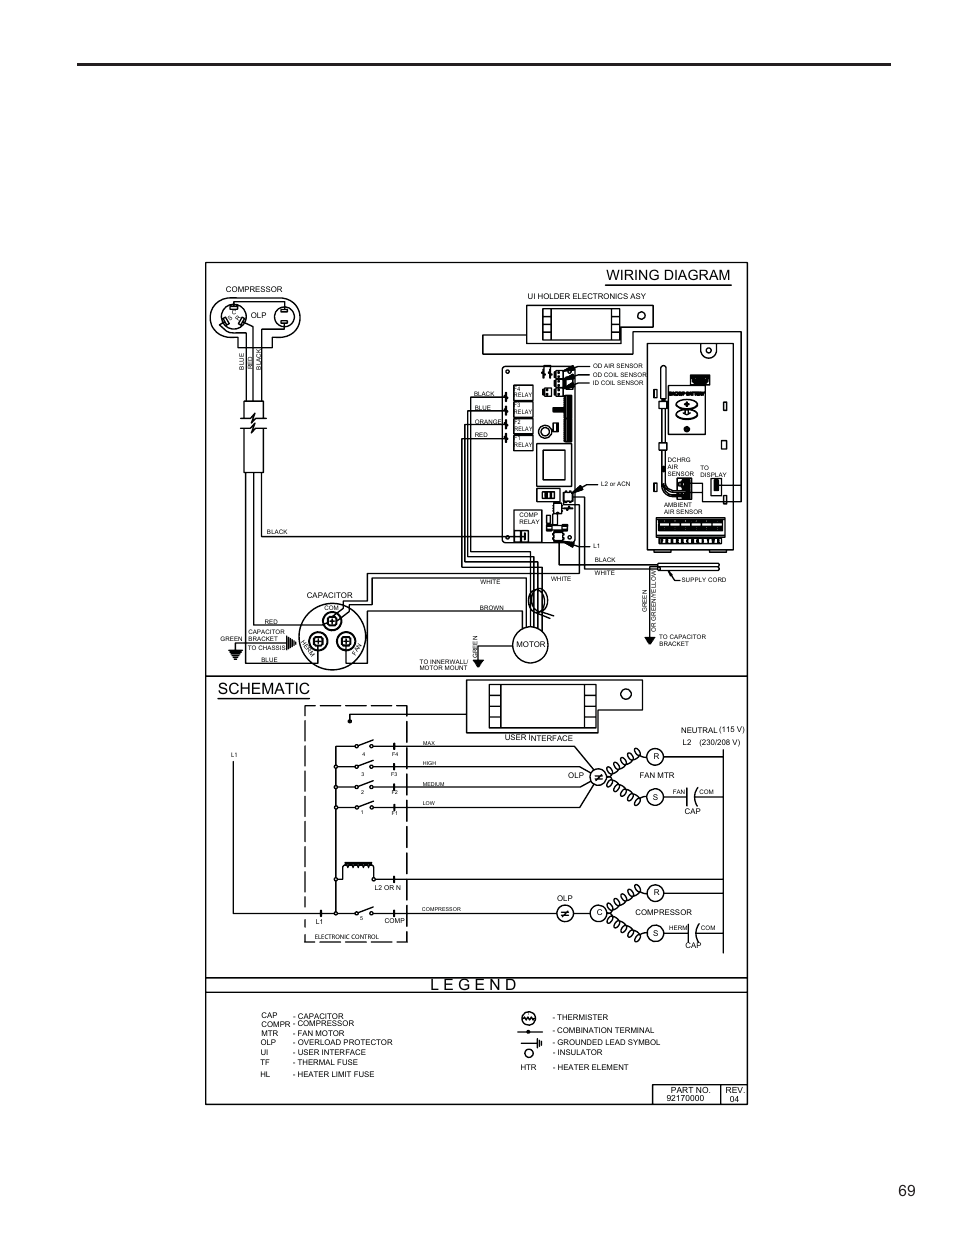 schematic wiring diagram friedrich kuhl r 410a user manual page rh manualsdir com Speed Queen Wiring Diagrams Thomas Wiring Diagrams